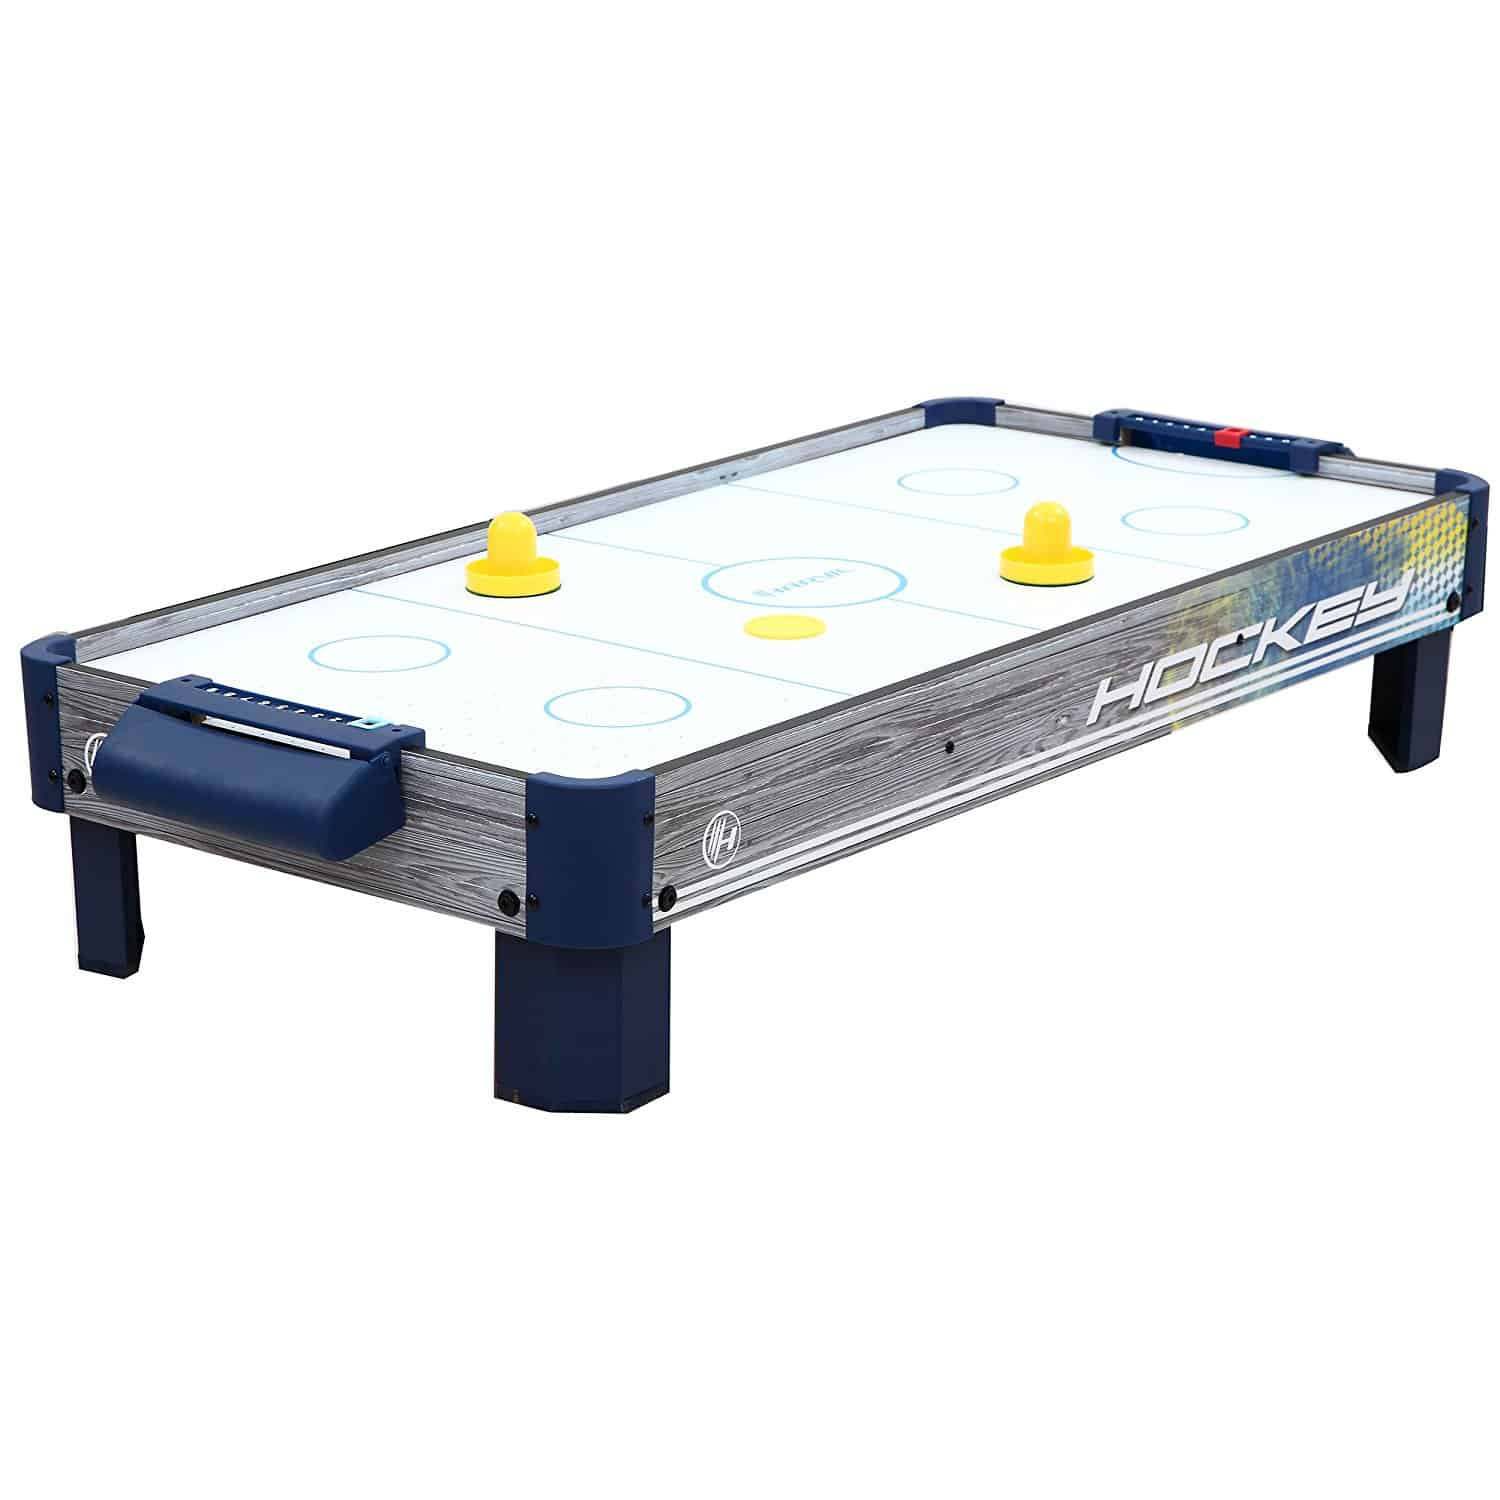 Harvil 40 Inch Tabletop Air Hockey Table